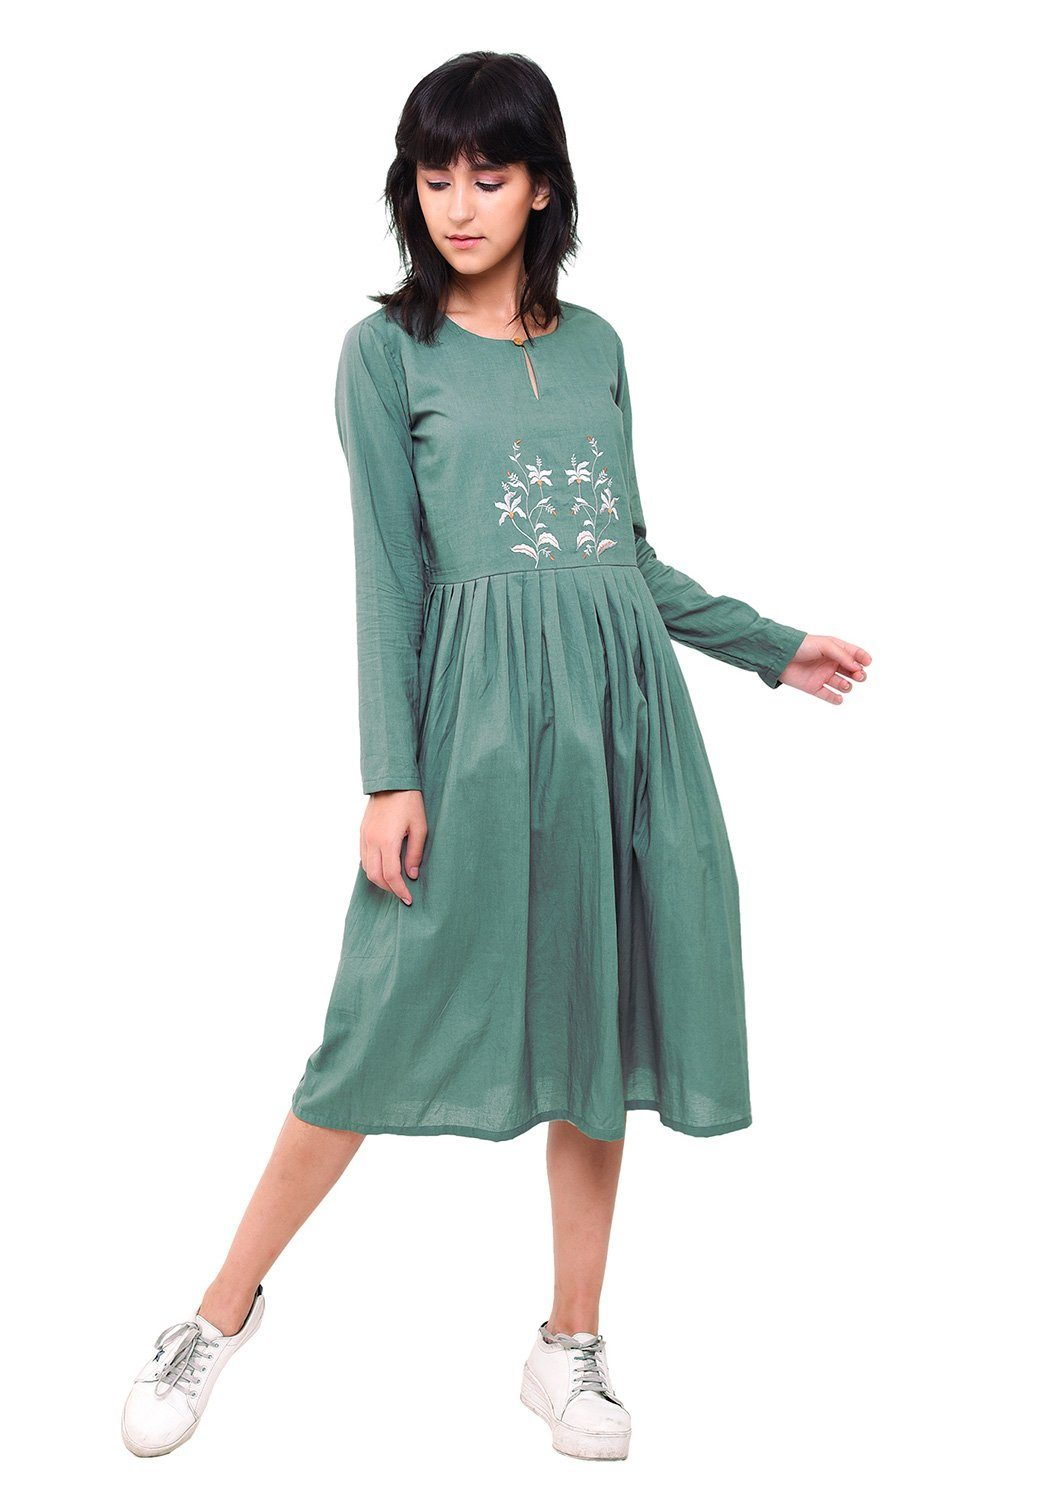 Embroidered Pleated Dress - Comfrey Dress VRITTA